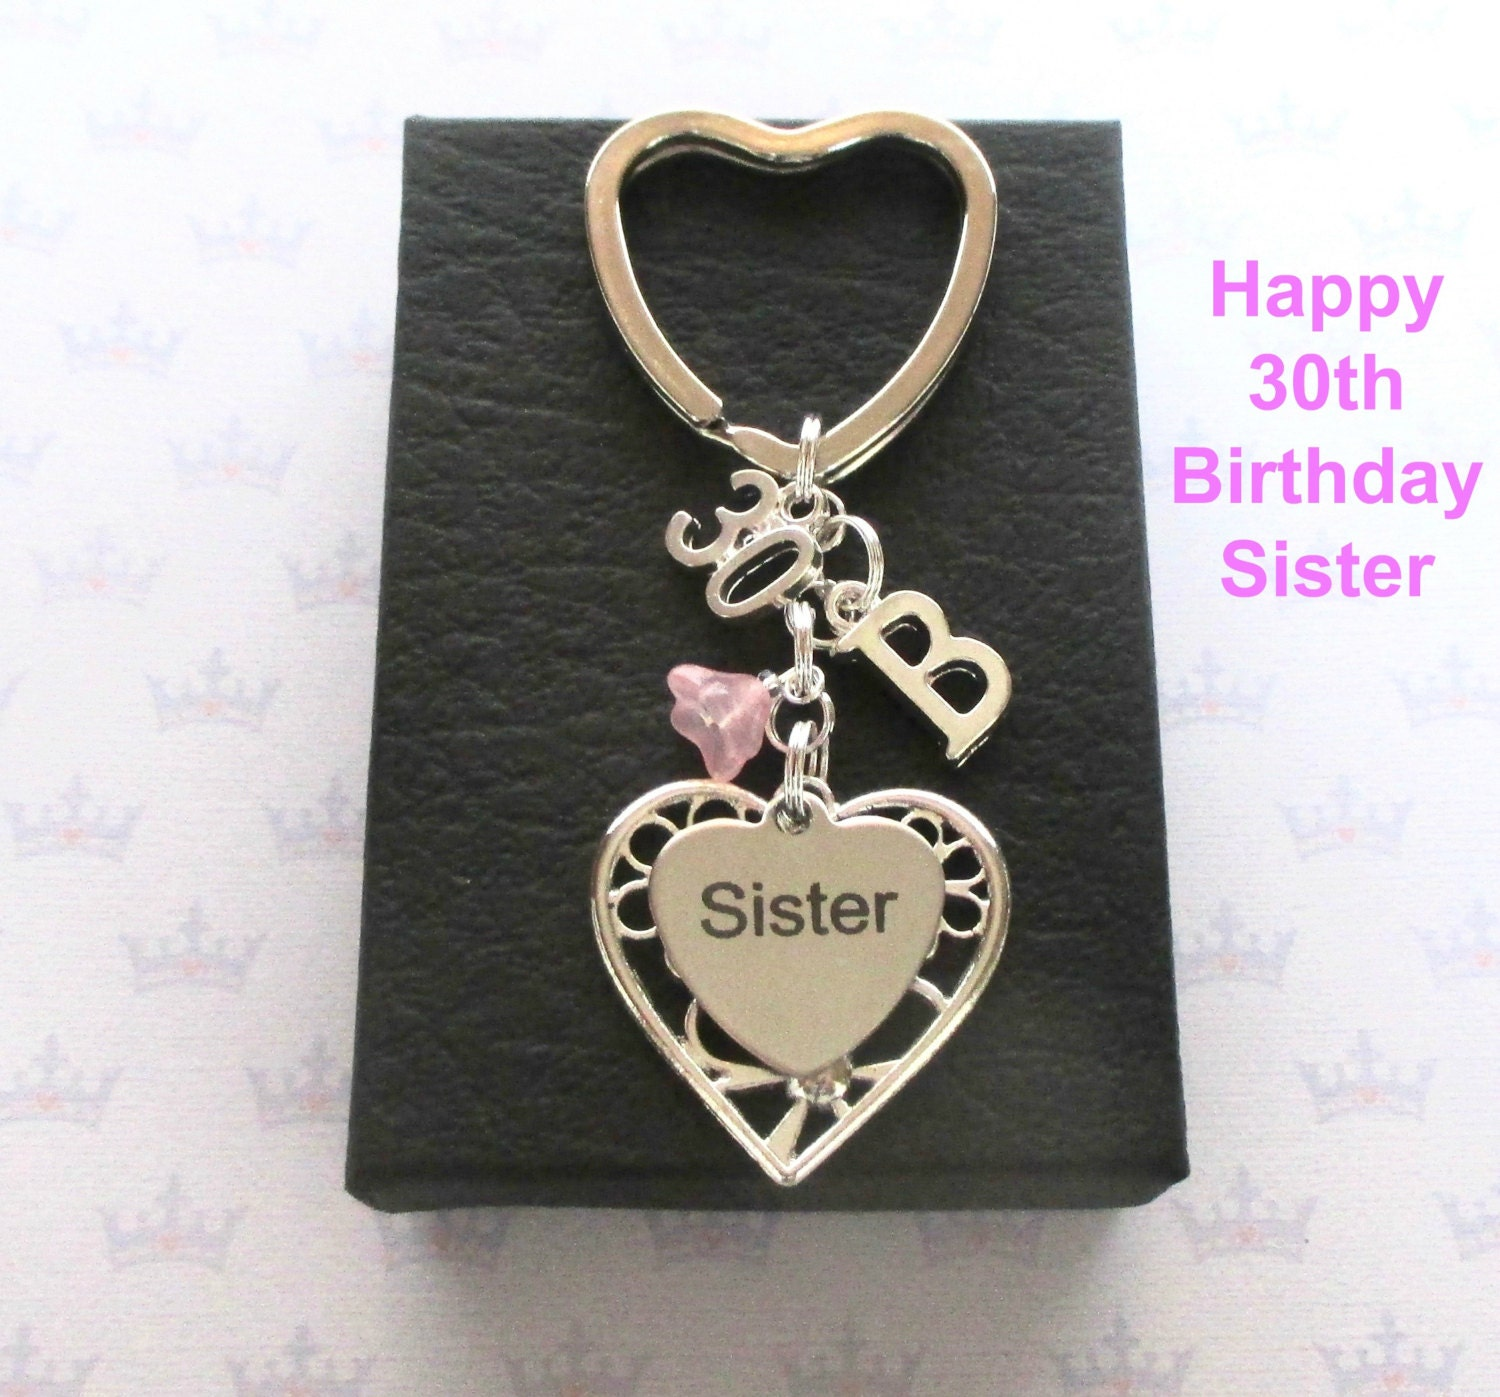 Sister 30th Birthday Gift 30th Keychain Sister Gift